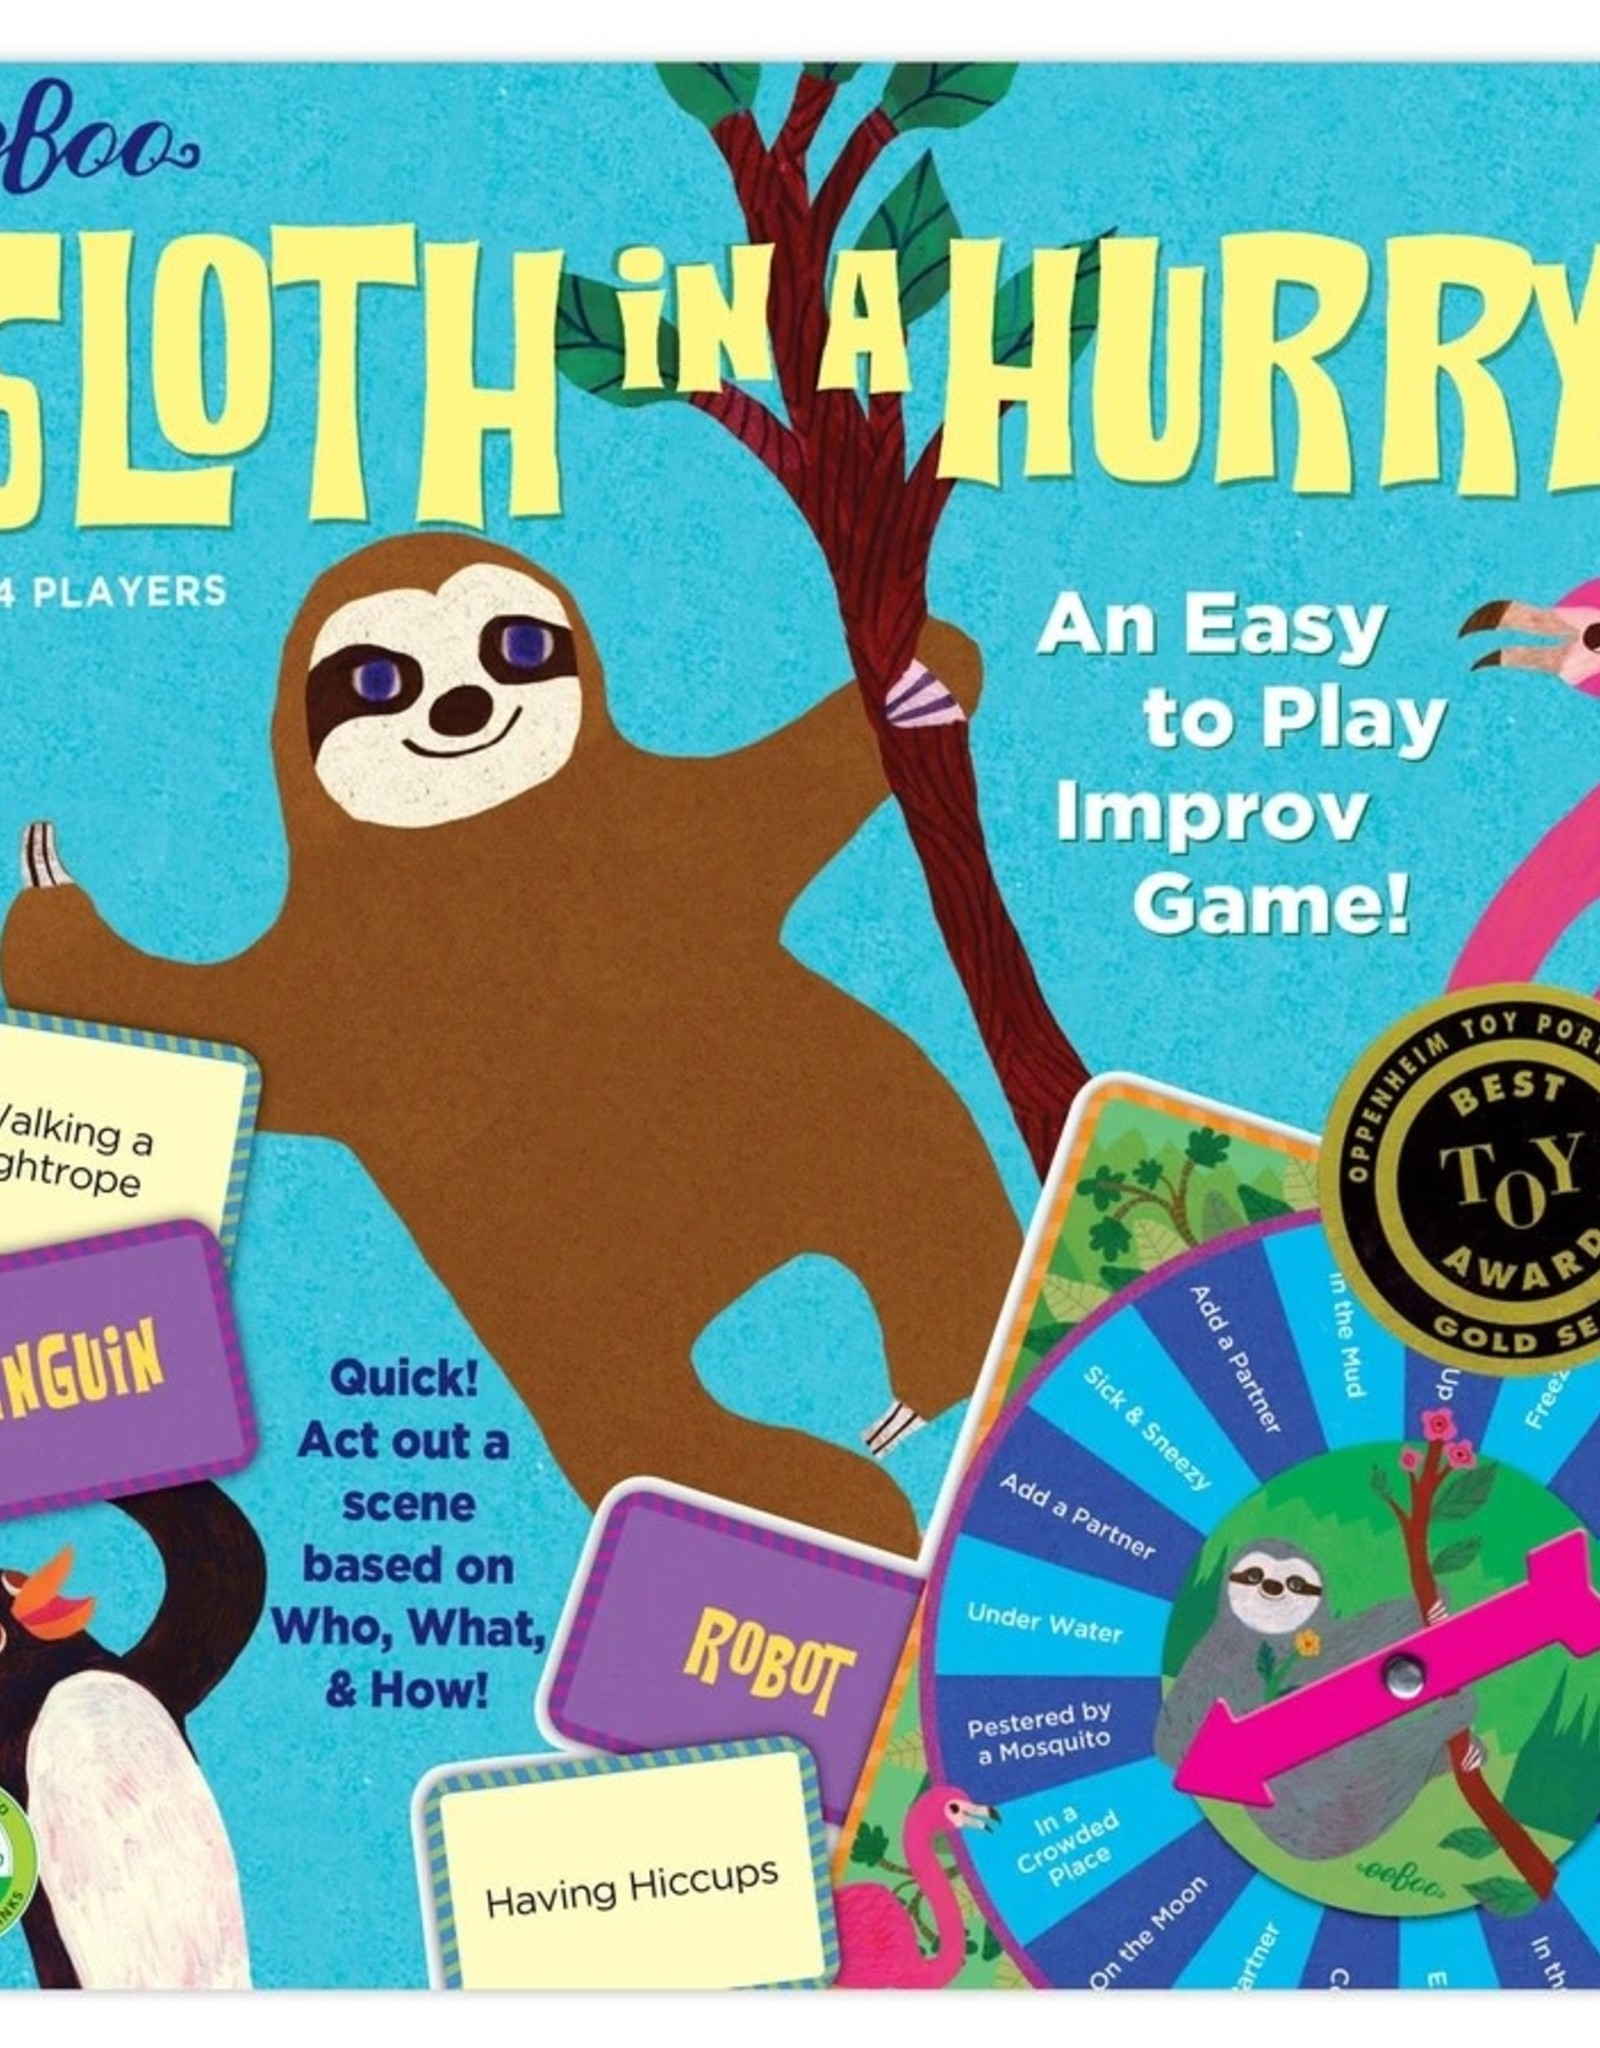 Eeboo Sloth in a Hurry Action Game